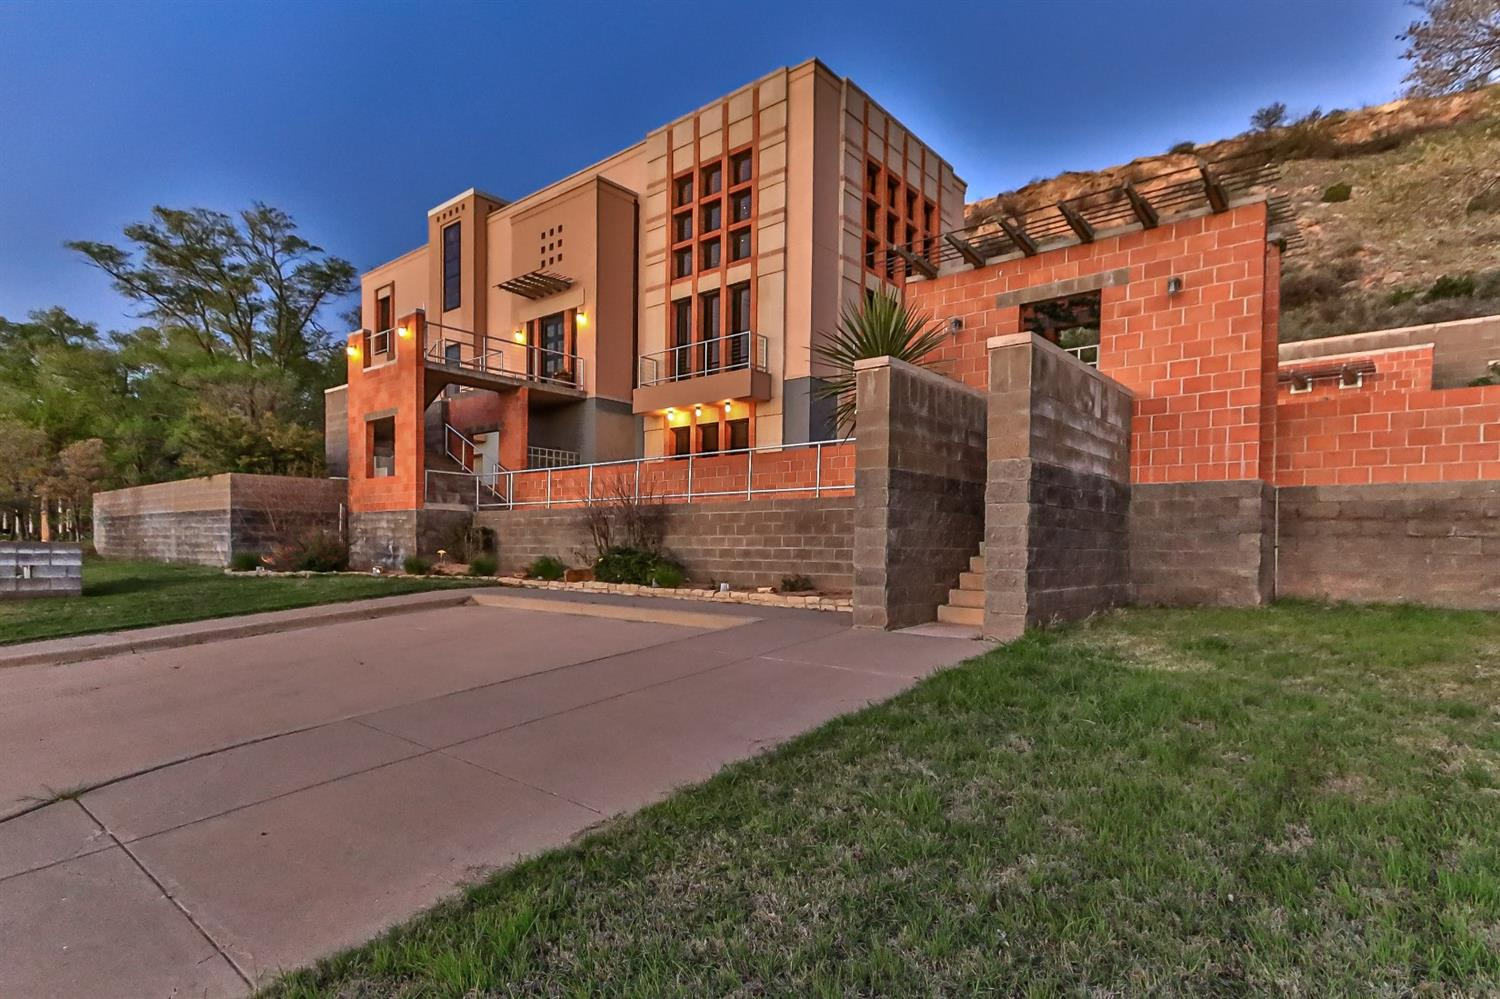 Walk from this amazing southwest contemporary home across the road to Lake Ransom Canyon! The main master suite encompasses the third level, offering private living area, over-sized bedroom w/fireplace & Juliet balcony. The en suite boasts two dressing areas, skylight, spa tub, steam shower, two closets & abundant storage. The kitchen has separate Sub Zero refrigerator & freezer, two ovens, ice maker, wine fridge & large pantry. The second master suite has a large closet, separate shower, Kohler soaking tub & is designed to allow for privacy while being utilized as a guest half bath. The third bedroom overlooks the pool & the lake. Its three-quarter bath may be accessed by guests enjoying the pool fireplace on cool nights or a relaxing swim in summer with the  fountains splashing! The 3 car garage has a 10x12 workshop & a 9x10 closet. Unbelievable storage. The unique features must be seen in person to truly appreciate! South lot can be purchased separately. Call today & fall in love!